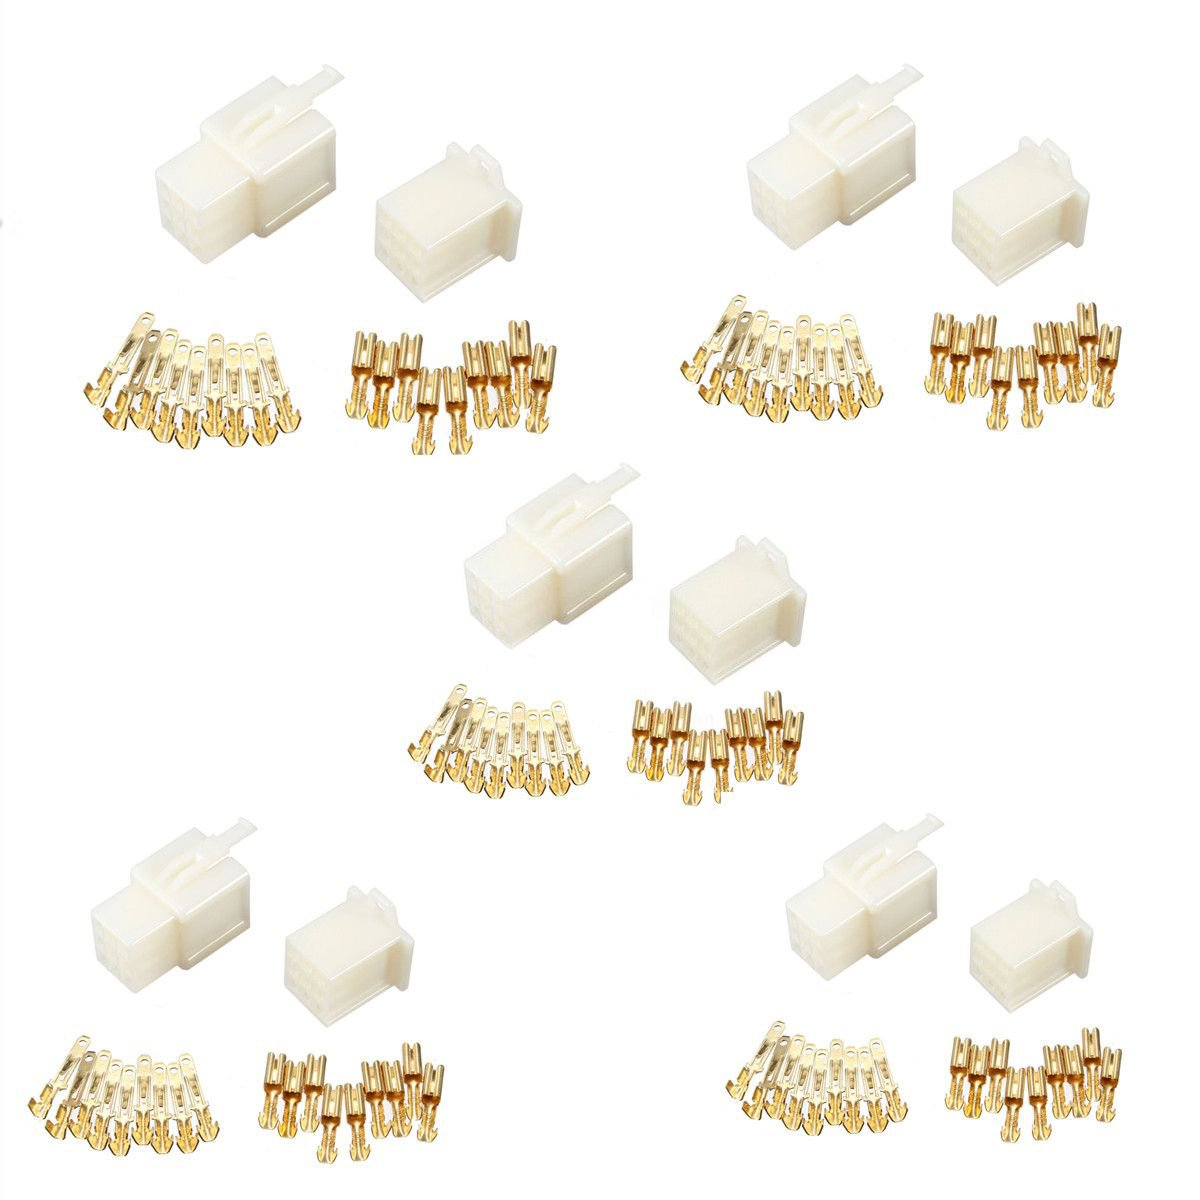 Connector Kit - TOOGOO(R) 5x 9 Way 2.8mm Mini Connector Kit Car Motorcycle Pin Terminal Blade ATV White by TOOGOO(R) (Image #6)